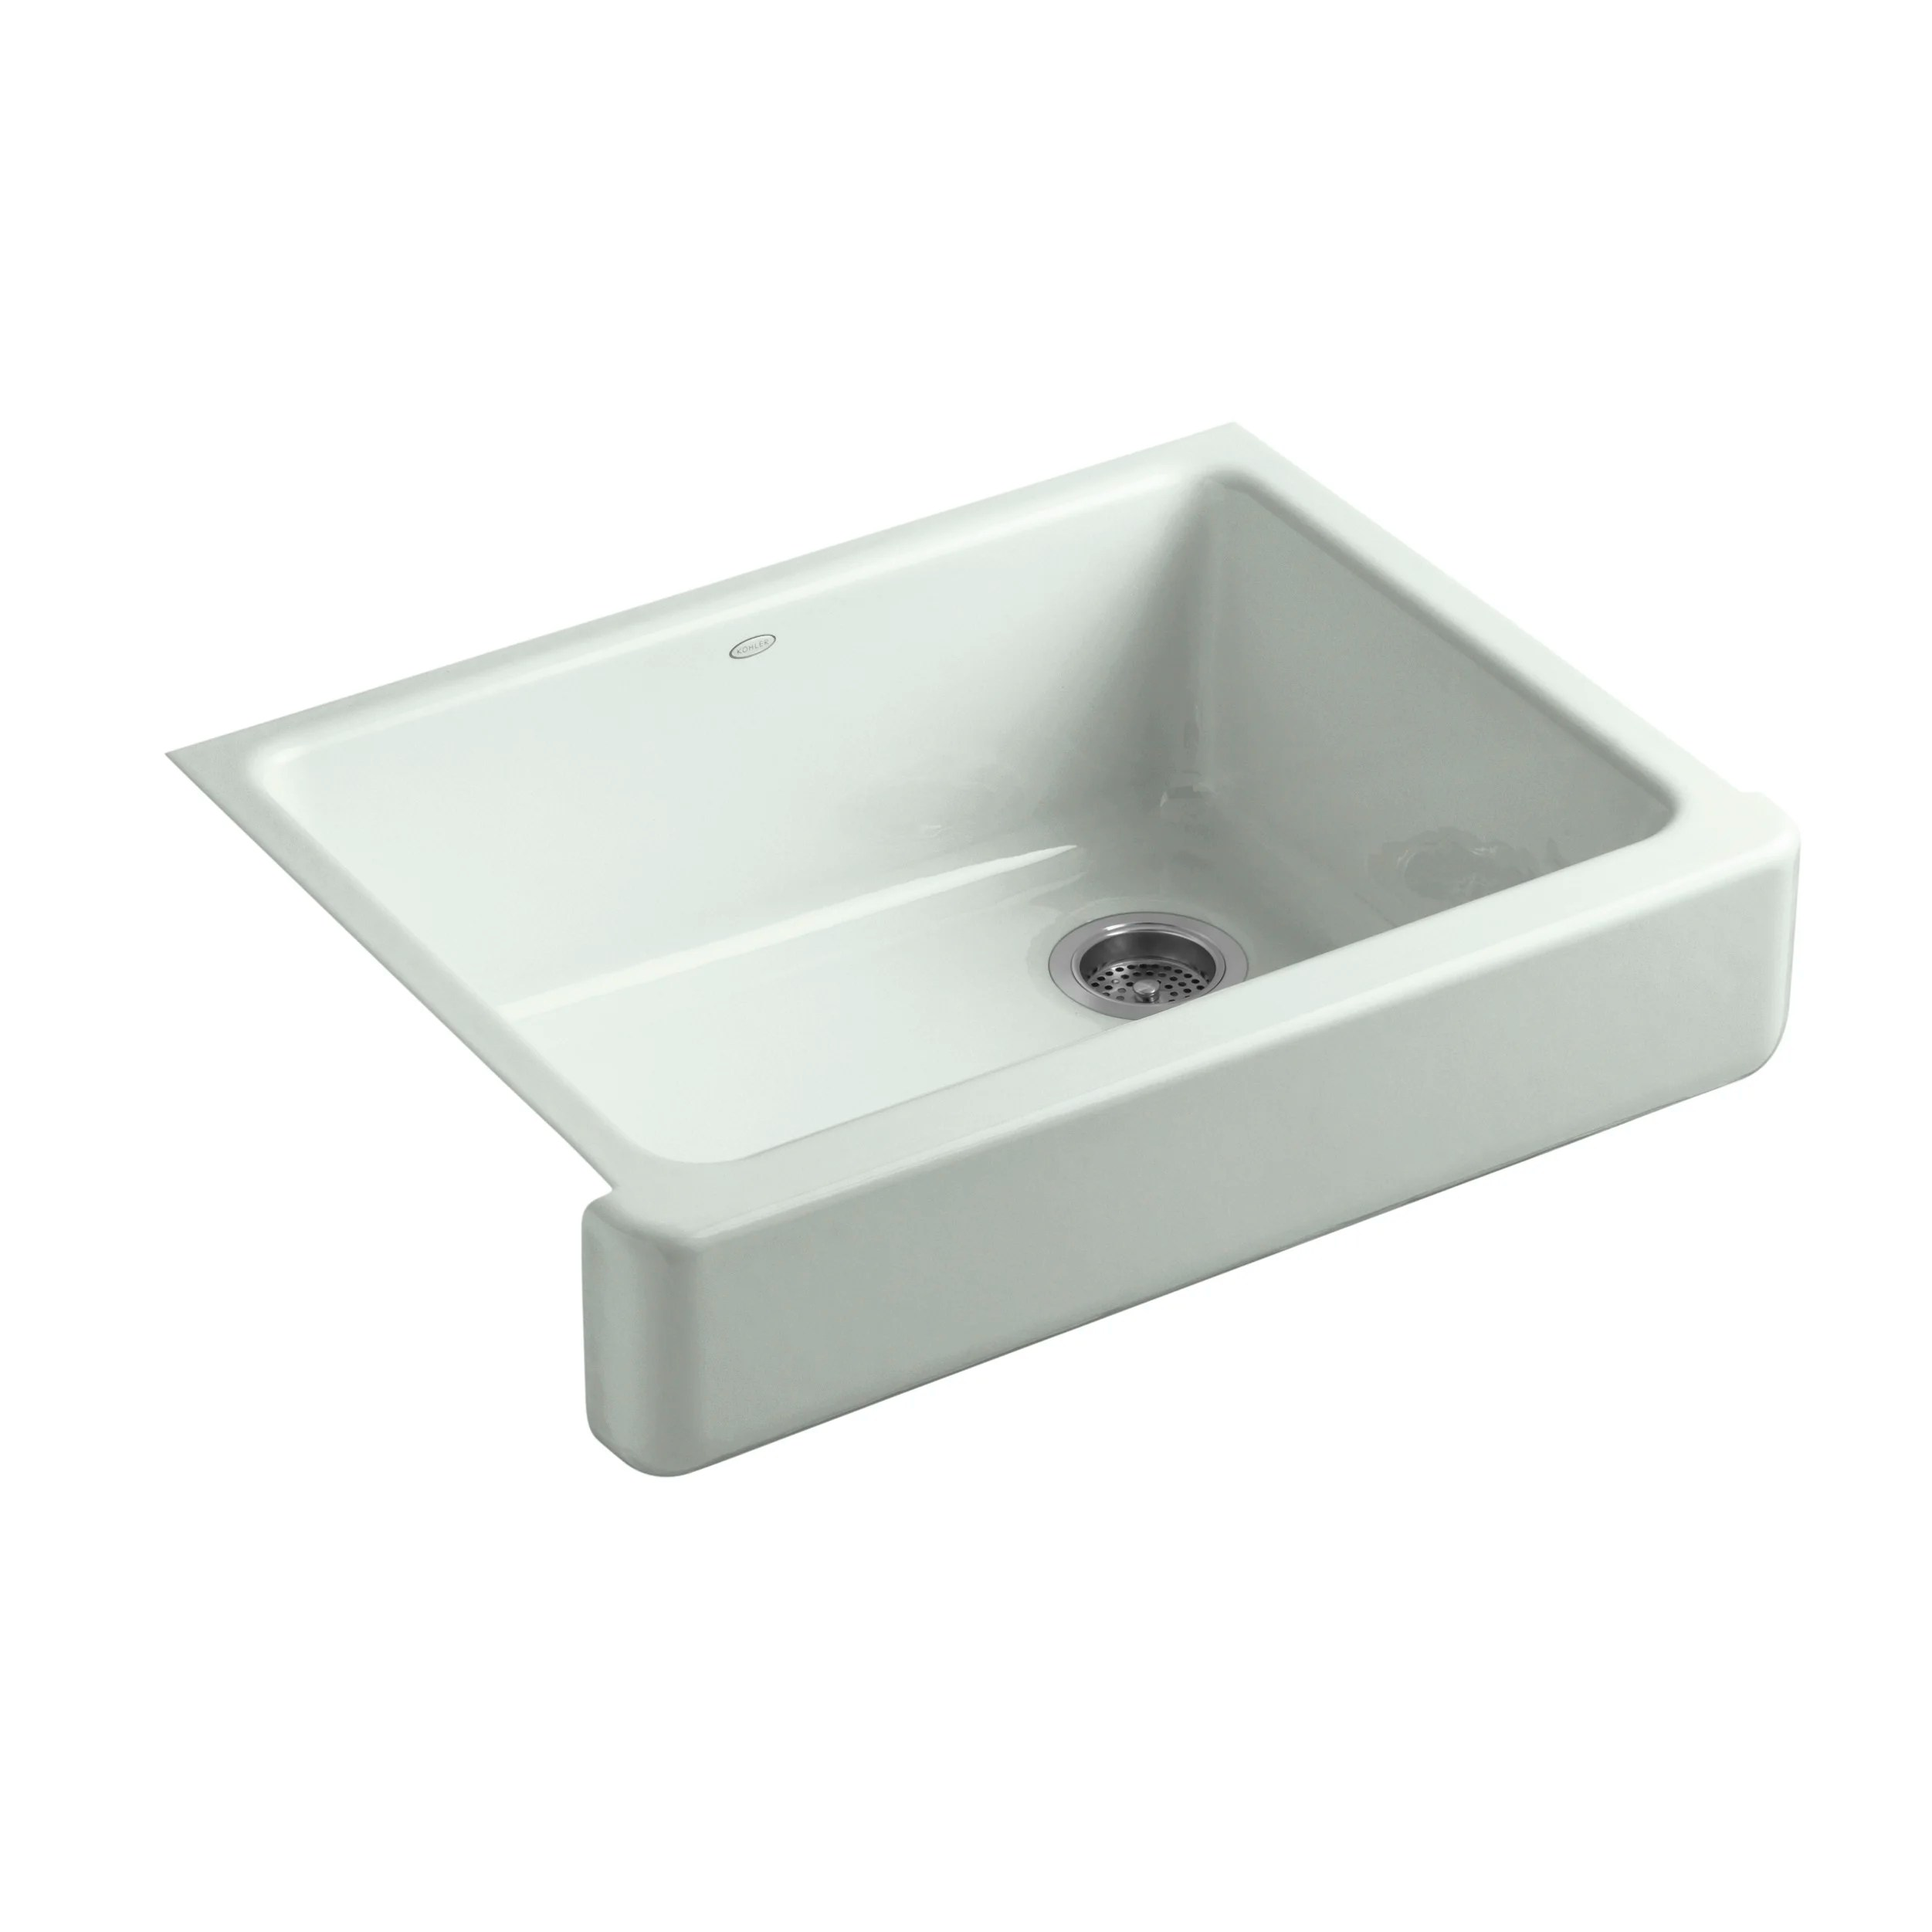 Kohler Whitehaven Farmhouse Sink Accessories Kohler Whitehaven Self Trimming 29 1 2 Quot X 21 9 16 Quot X 9 5 8